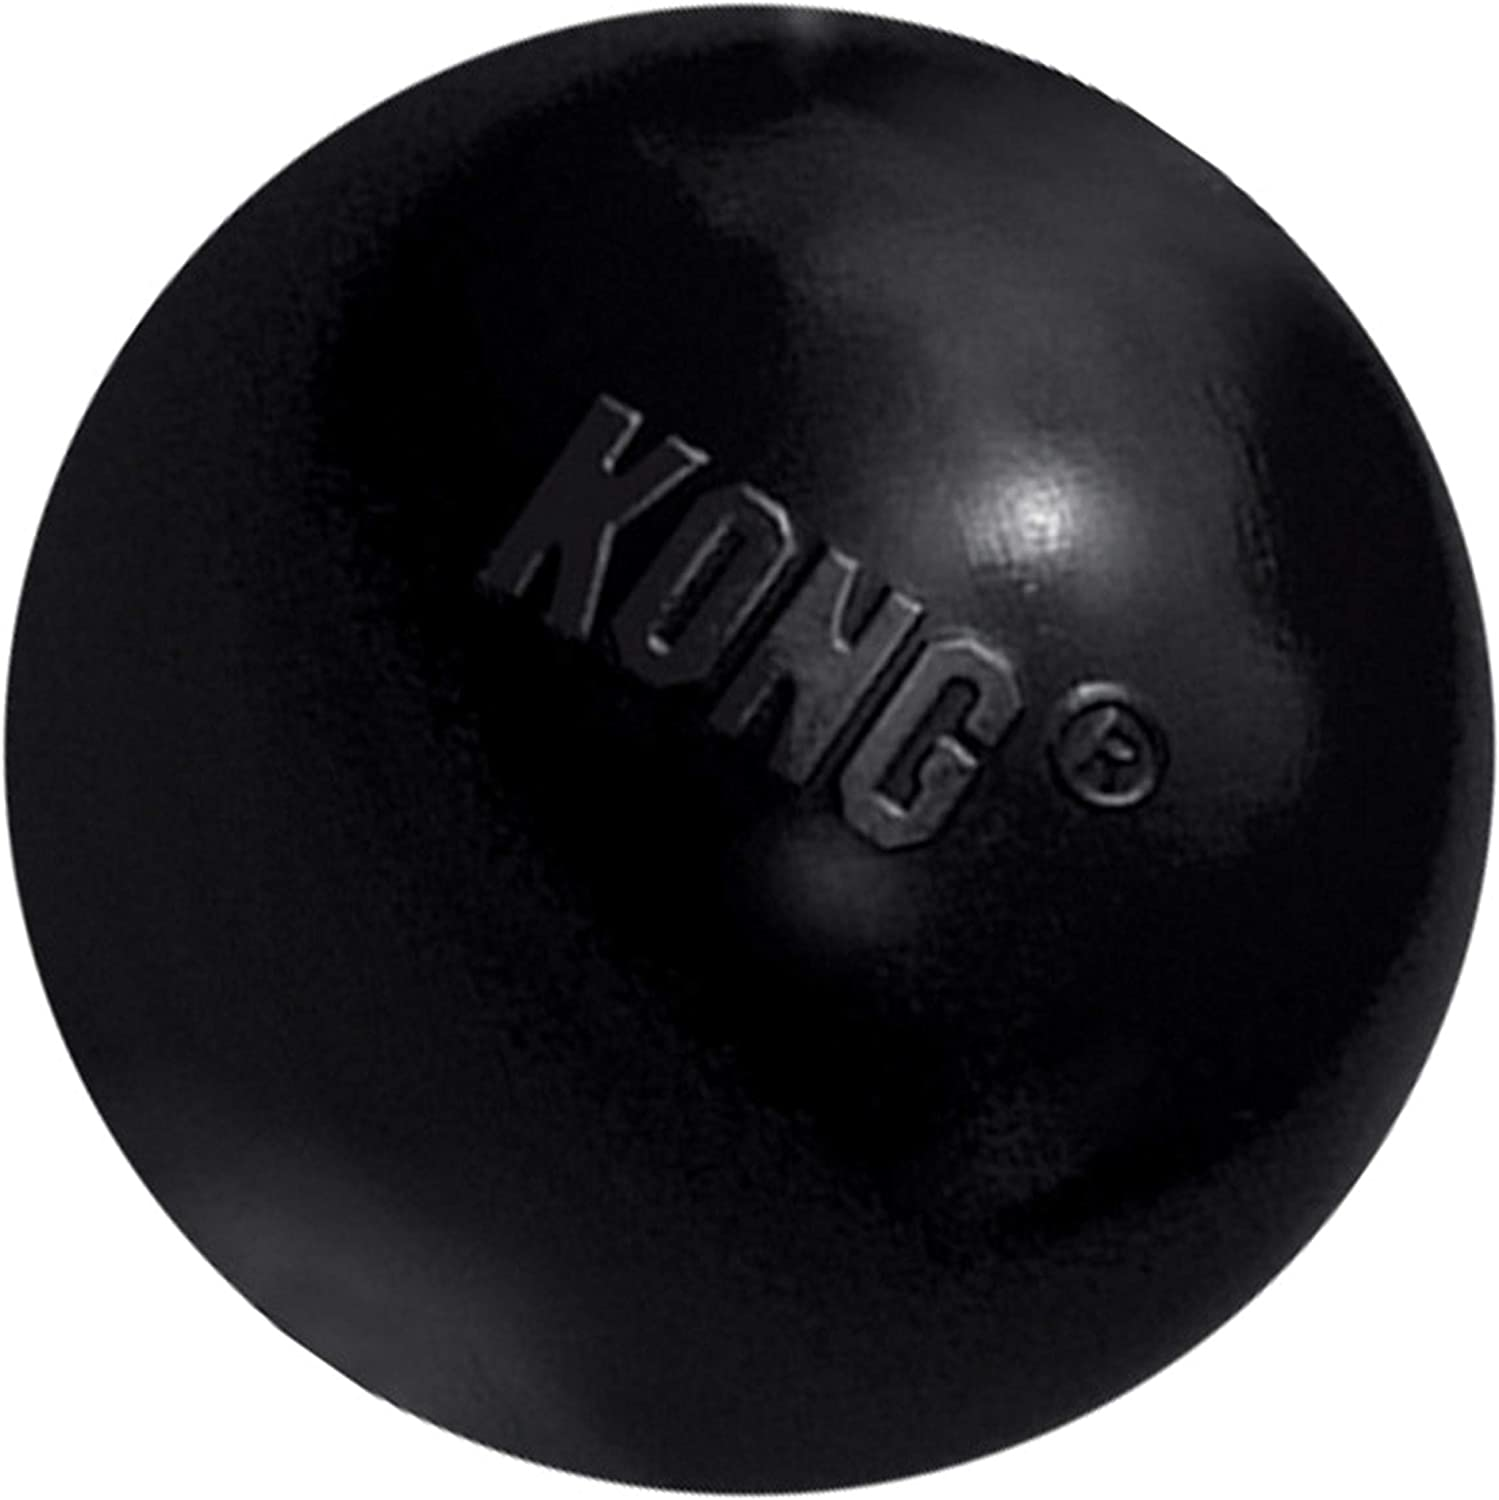 Pet Supplies : Pet Toy Balls : KONG - Extreme Ball - Durable Rubber Dog Toy for Power Chewers, Black - for Medium/Large Dogs :